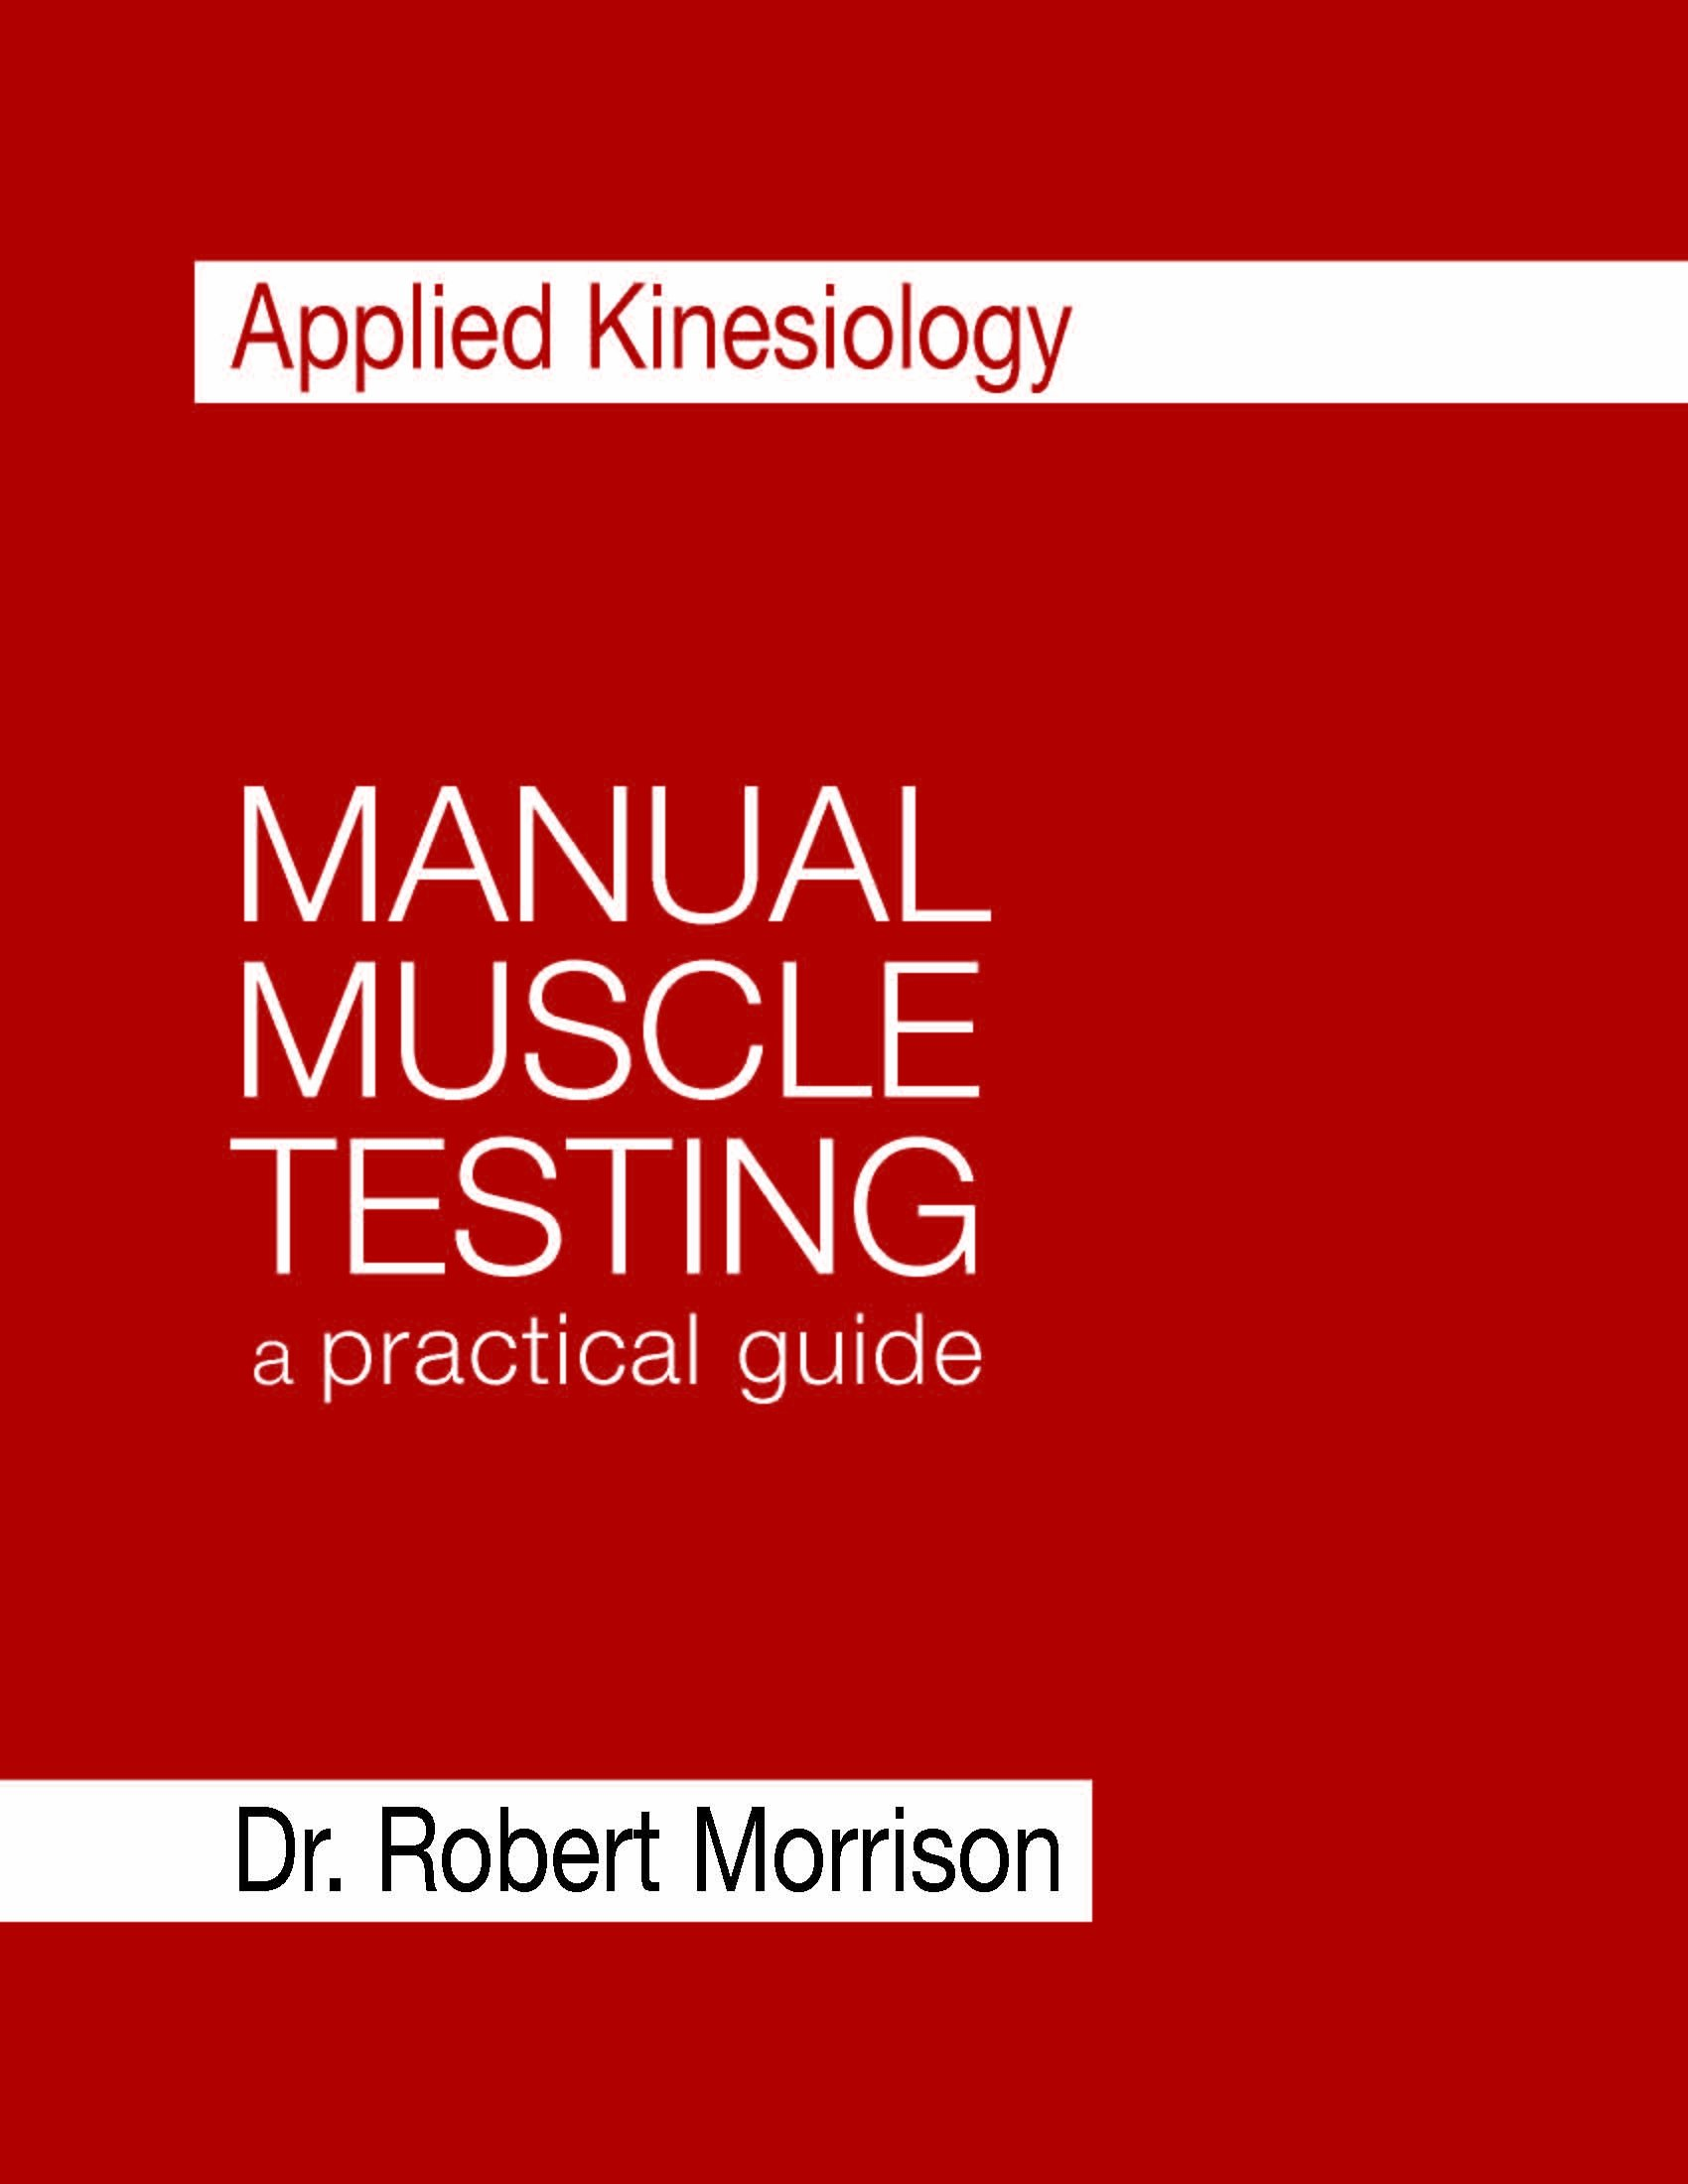 Applied Kinesiology Manual Muscle Testing: a practical guide: Dr. Robert Morrison: 9781467513395: Amazon.com: Books